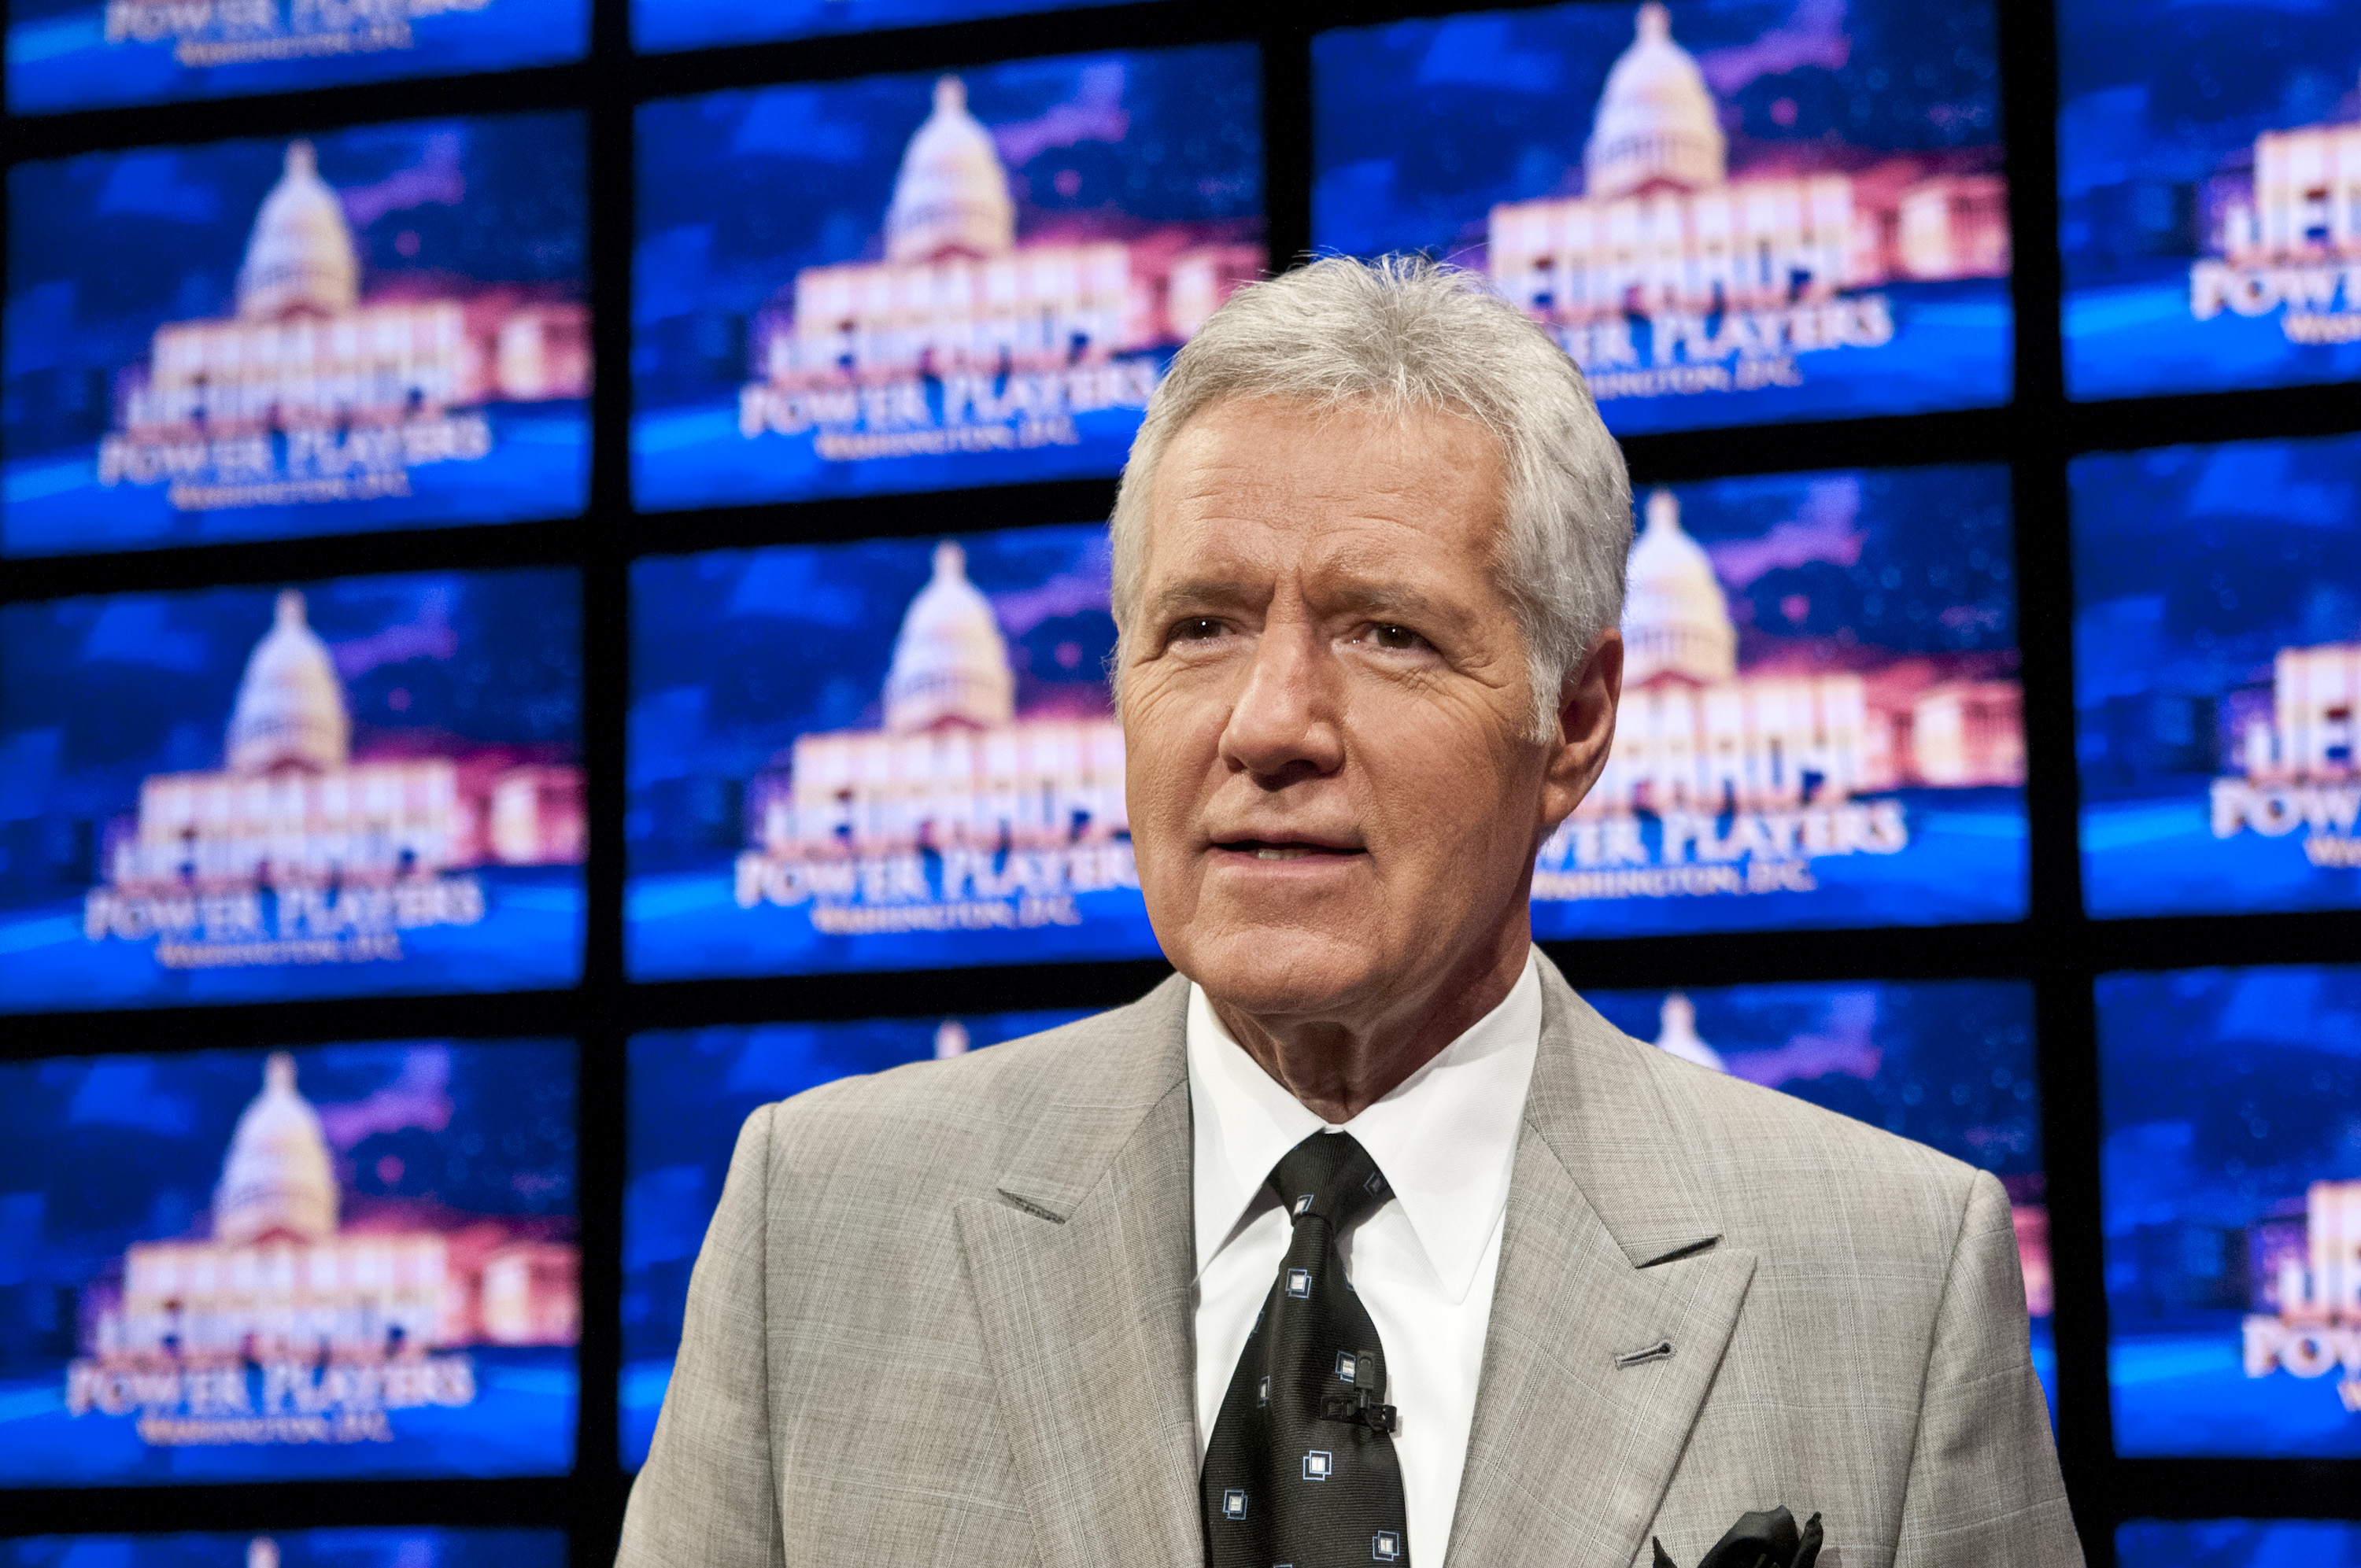 In posthumous message, Alex Trebek asks viewers to 'be thankful' and 'keep the faith'